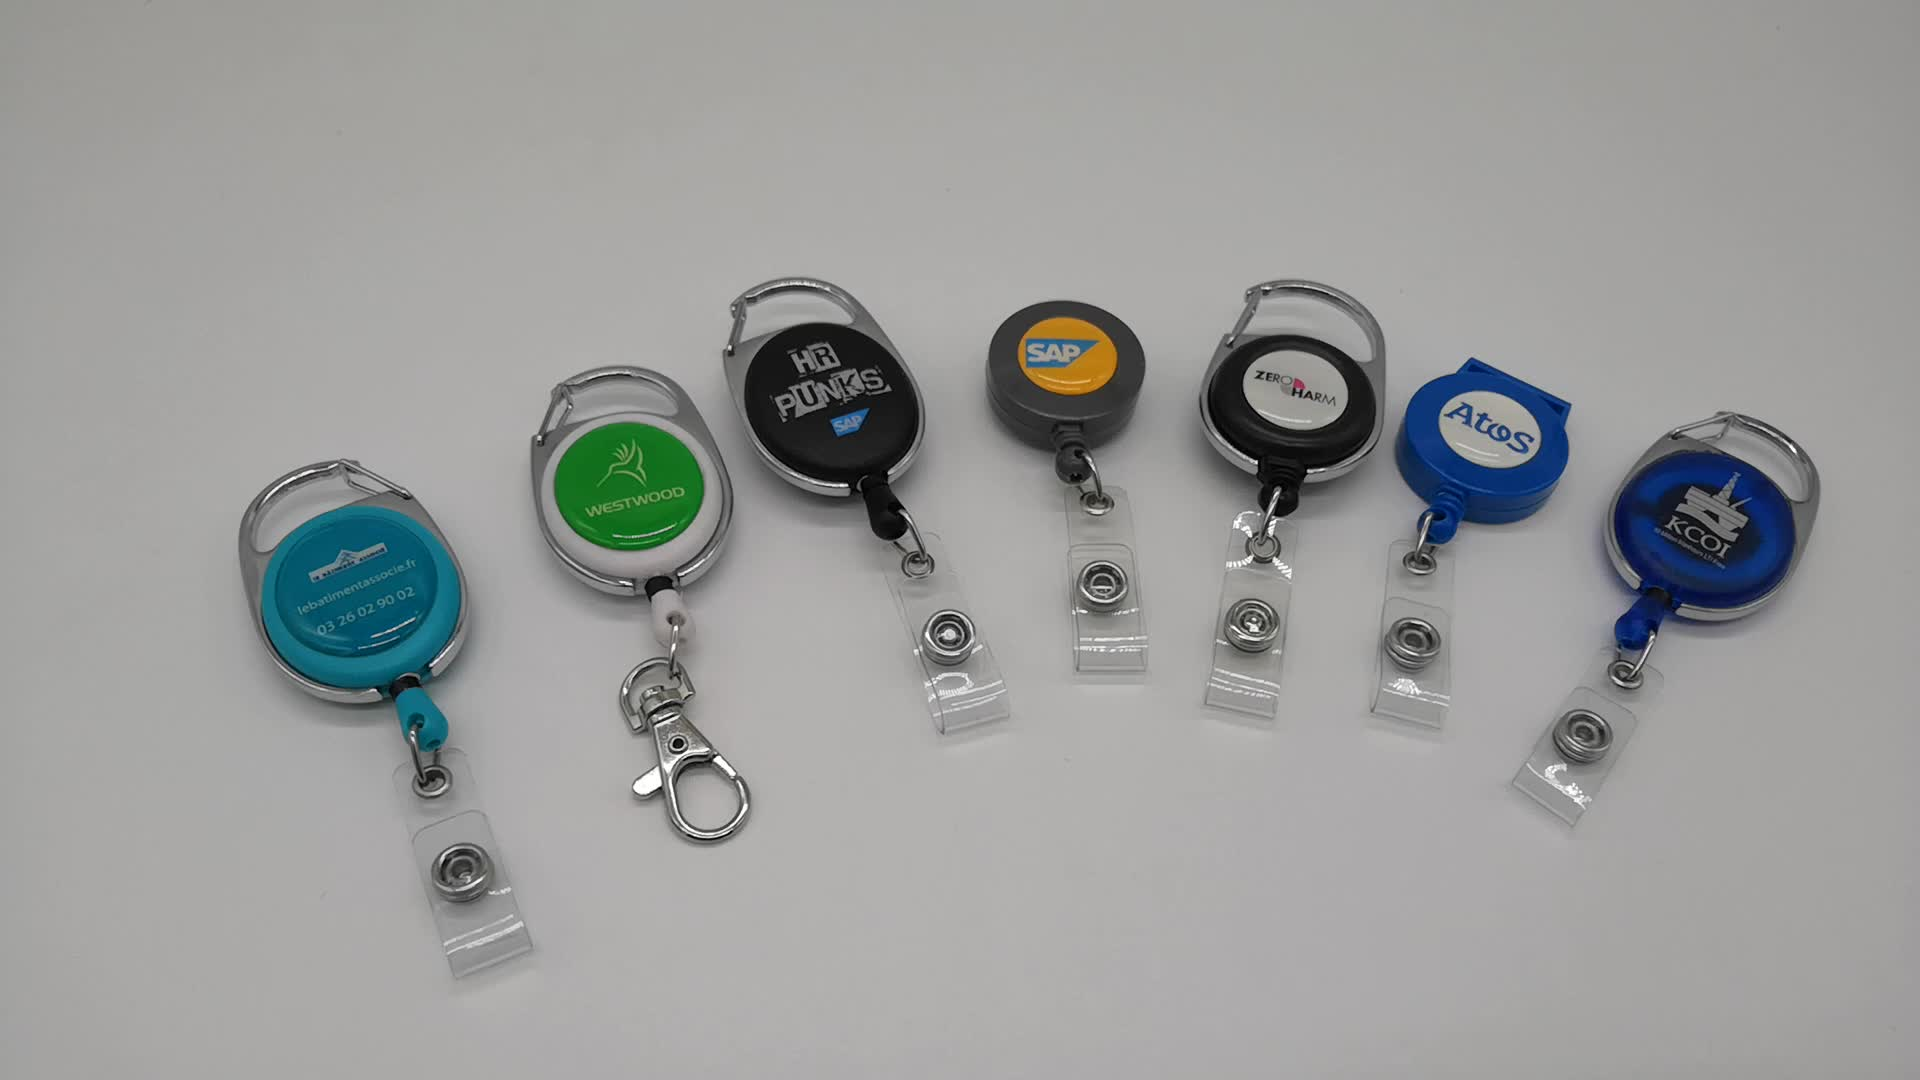 Grosir multi-gaya yoyo carabiner retractable id badge holder gulungan tarik